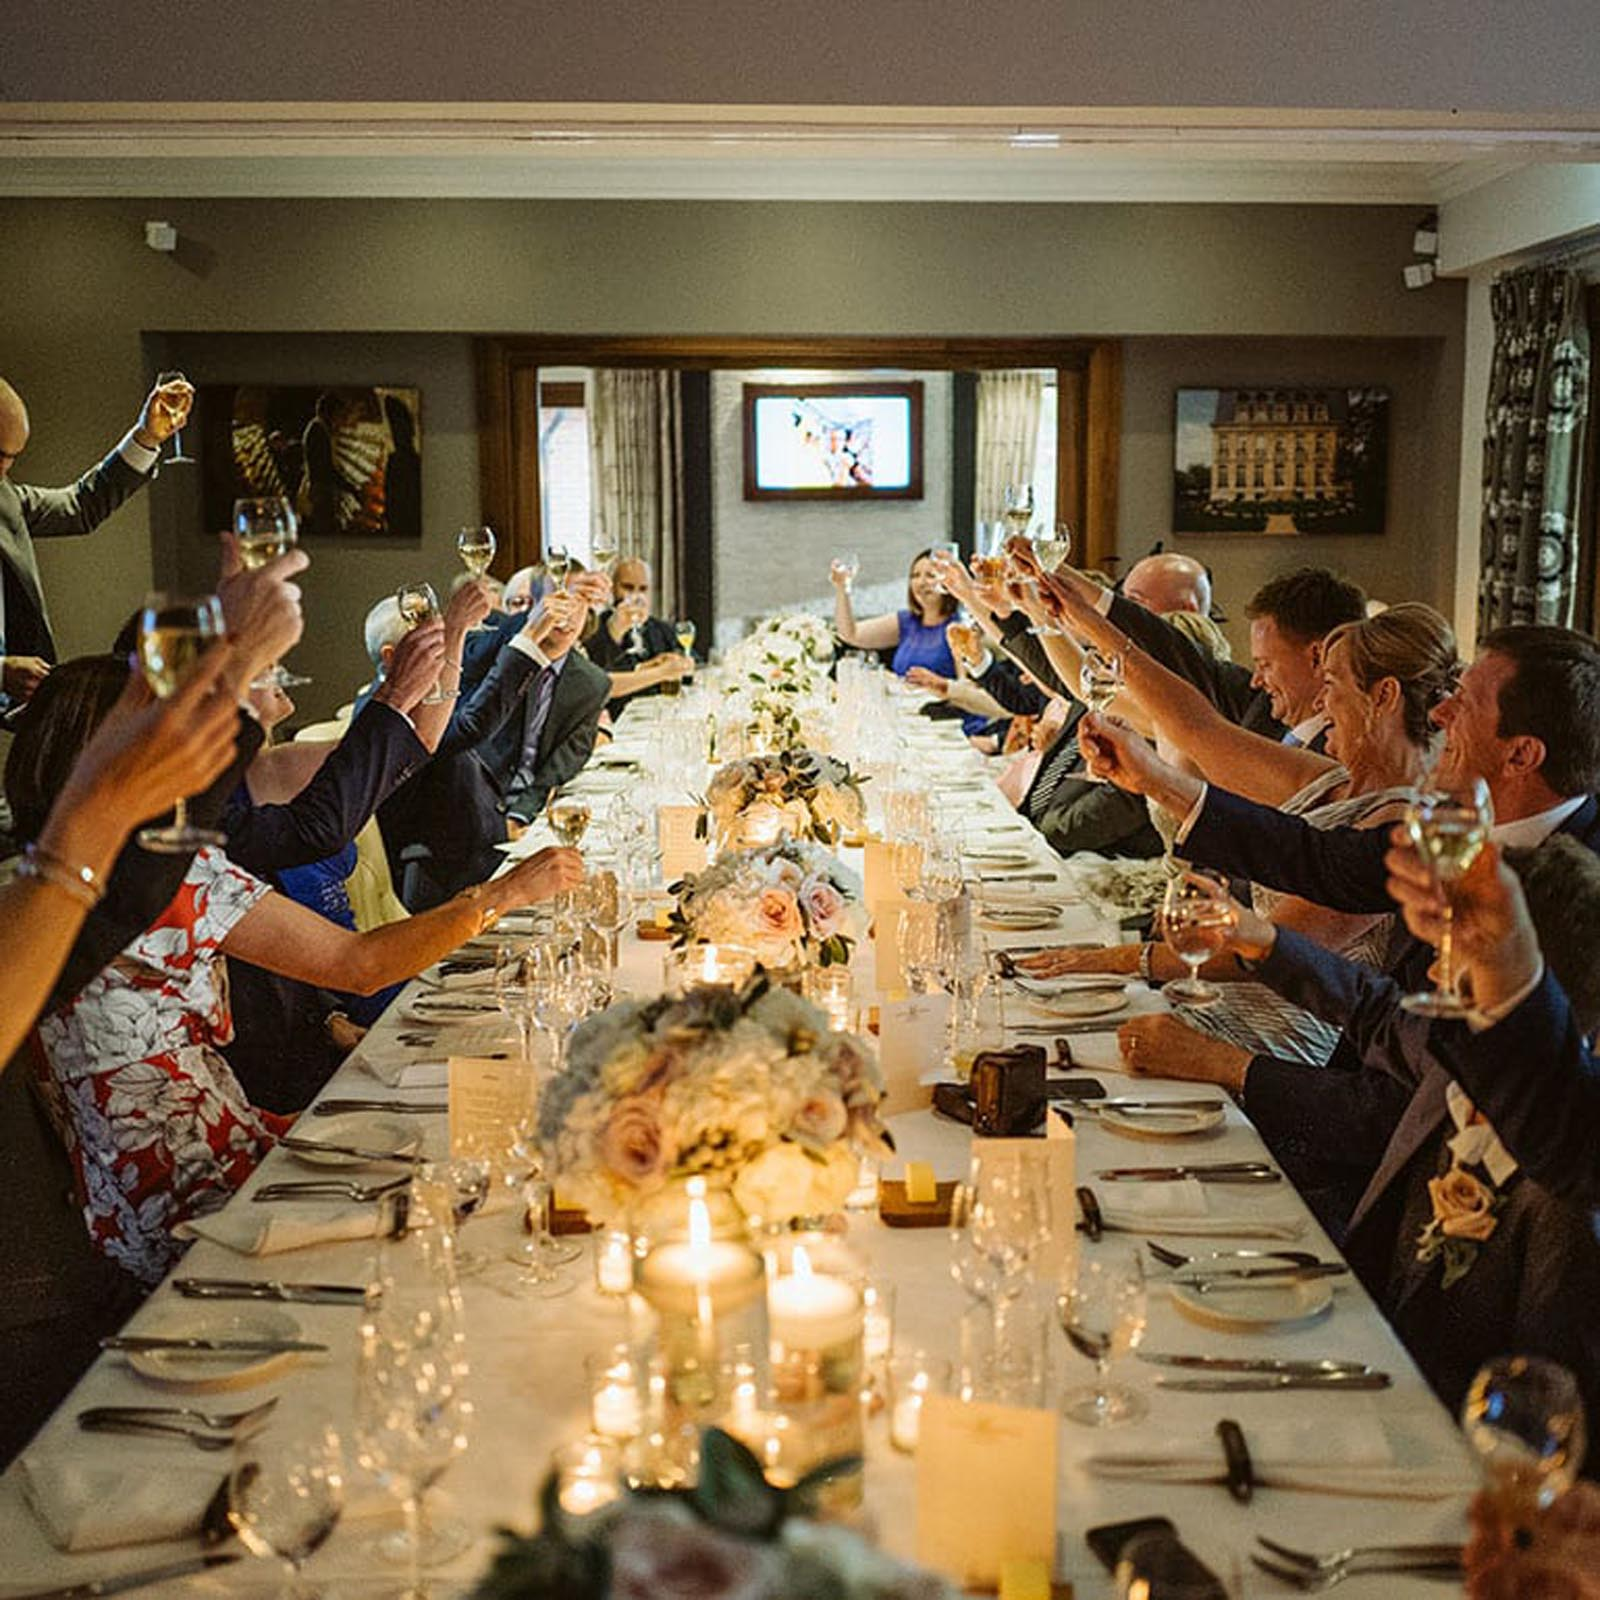 Guests all raising a glass in the private dining room.